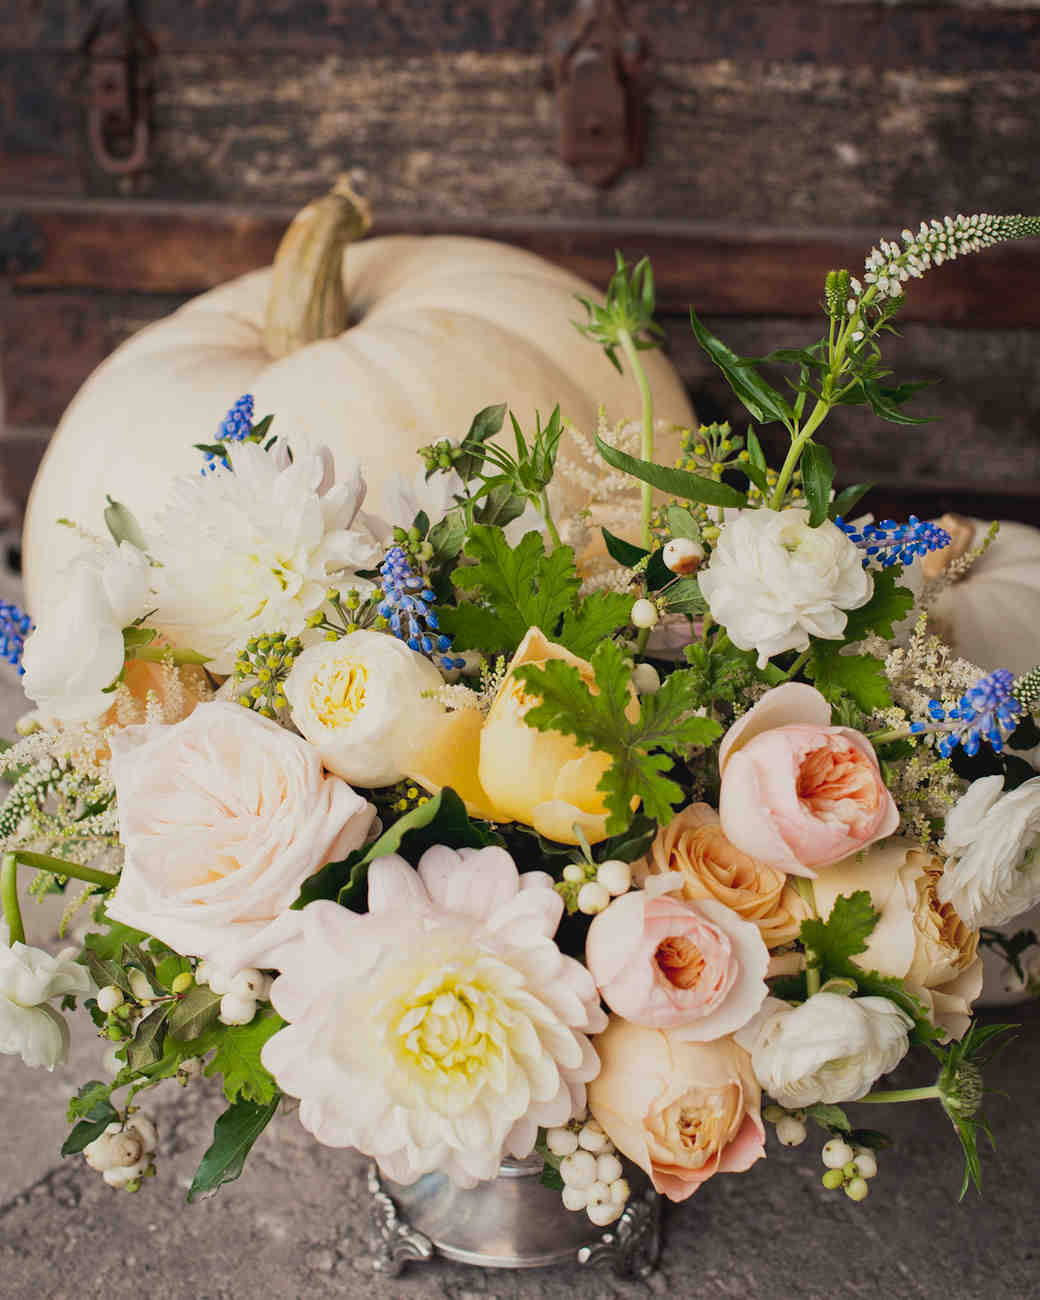 Fall Flower Arrangement and White Pumpkins